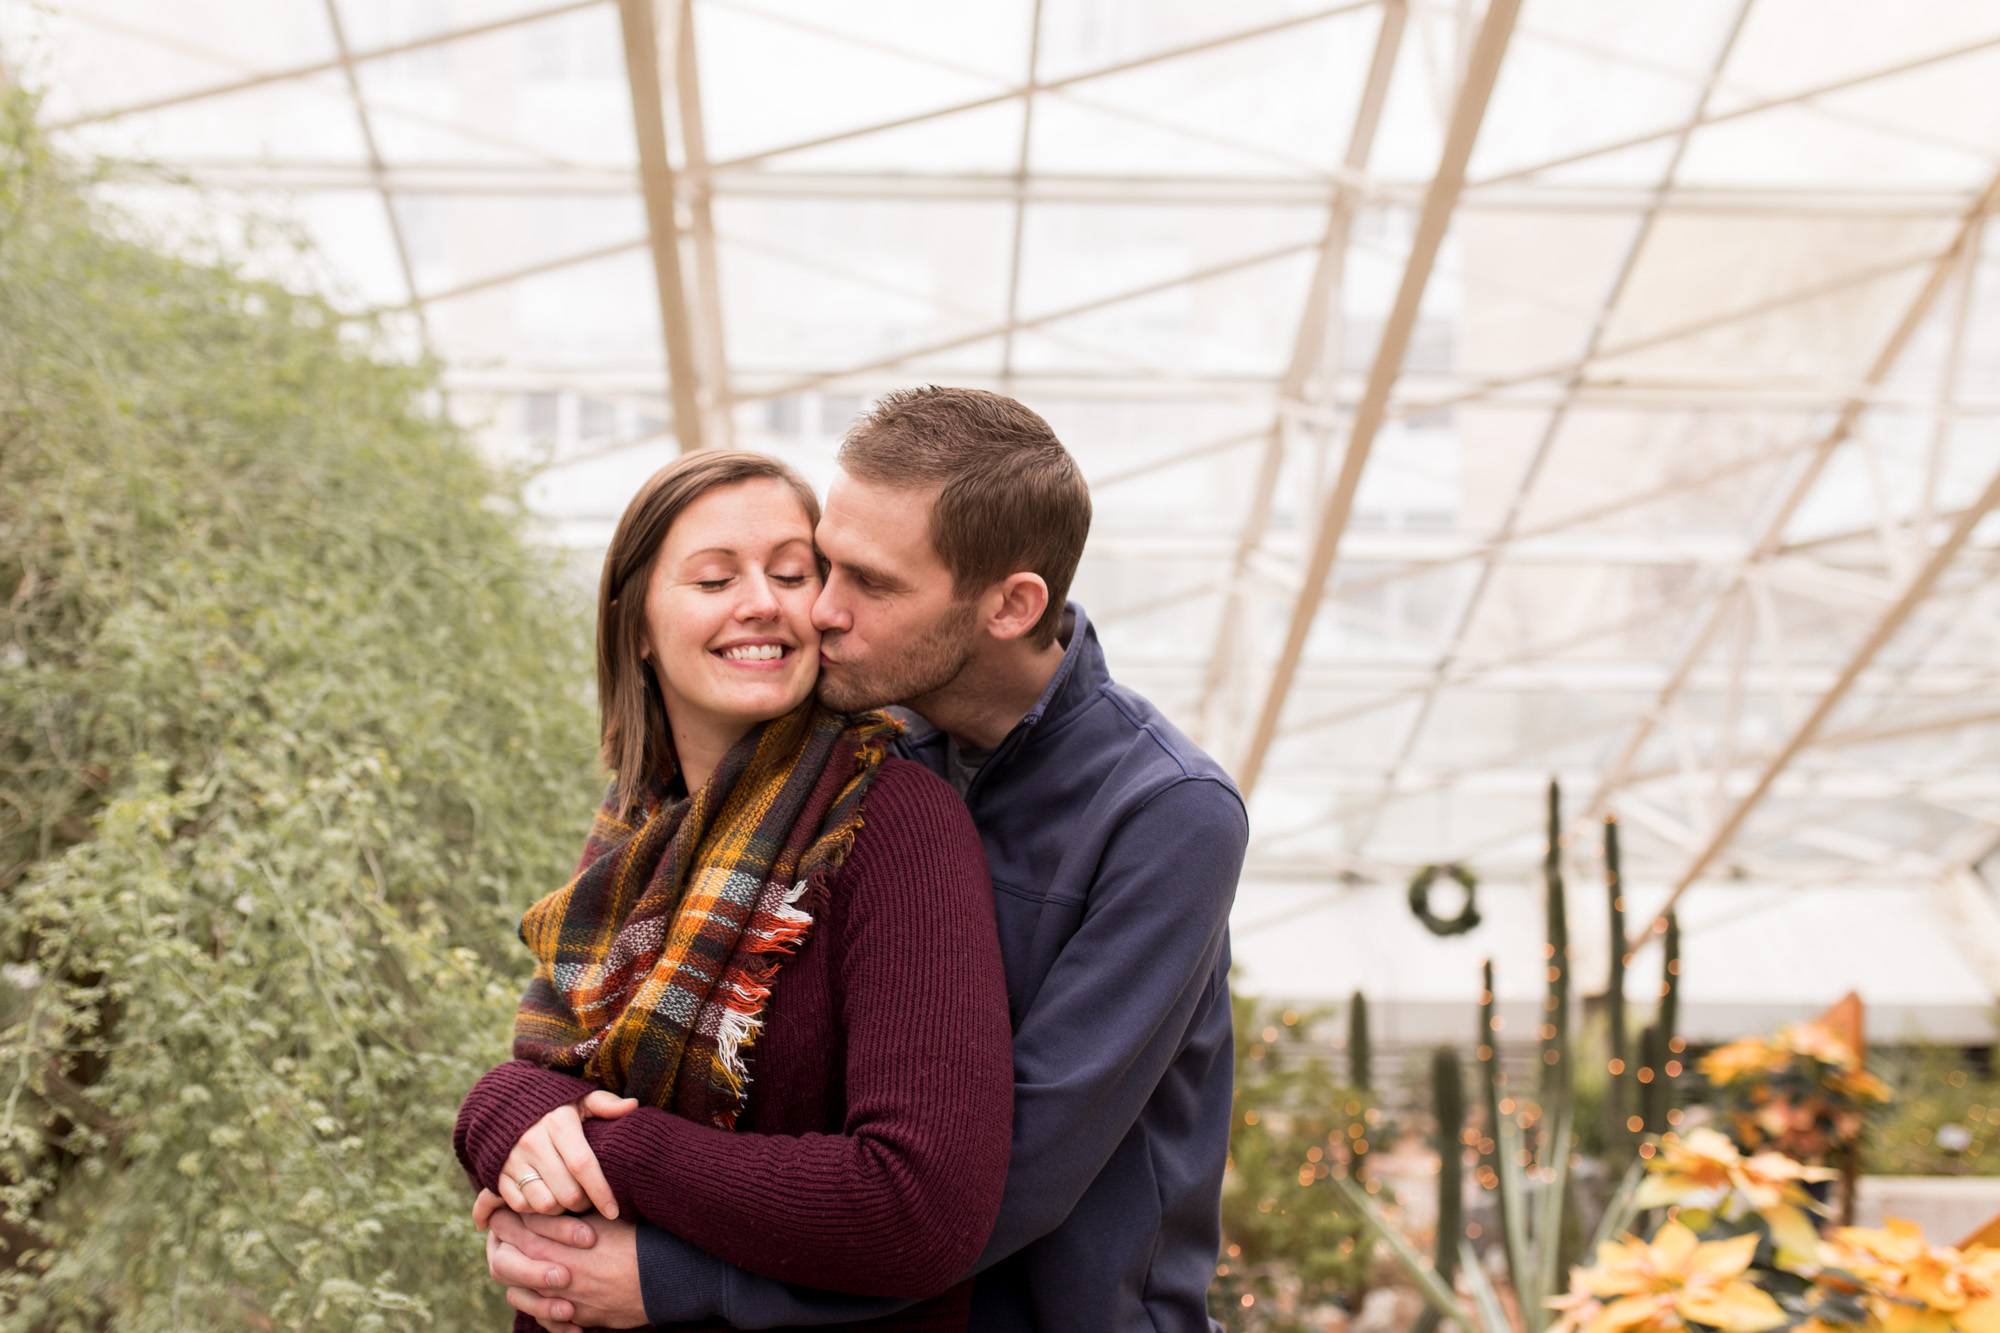 Fort Wayne family photographer session at Foellinger-Freimann Botanical Conservatory